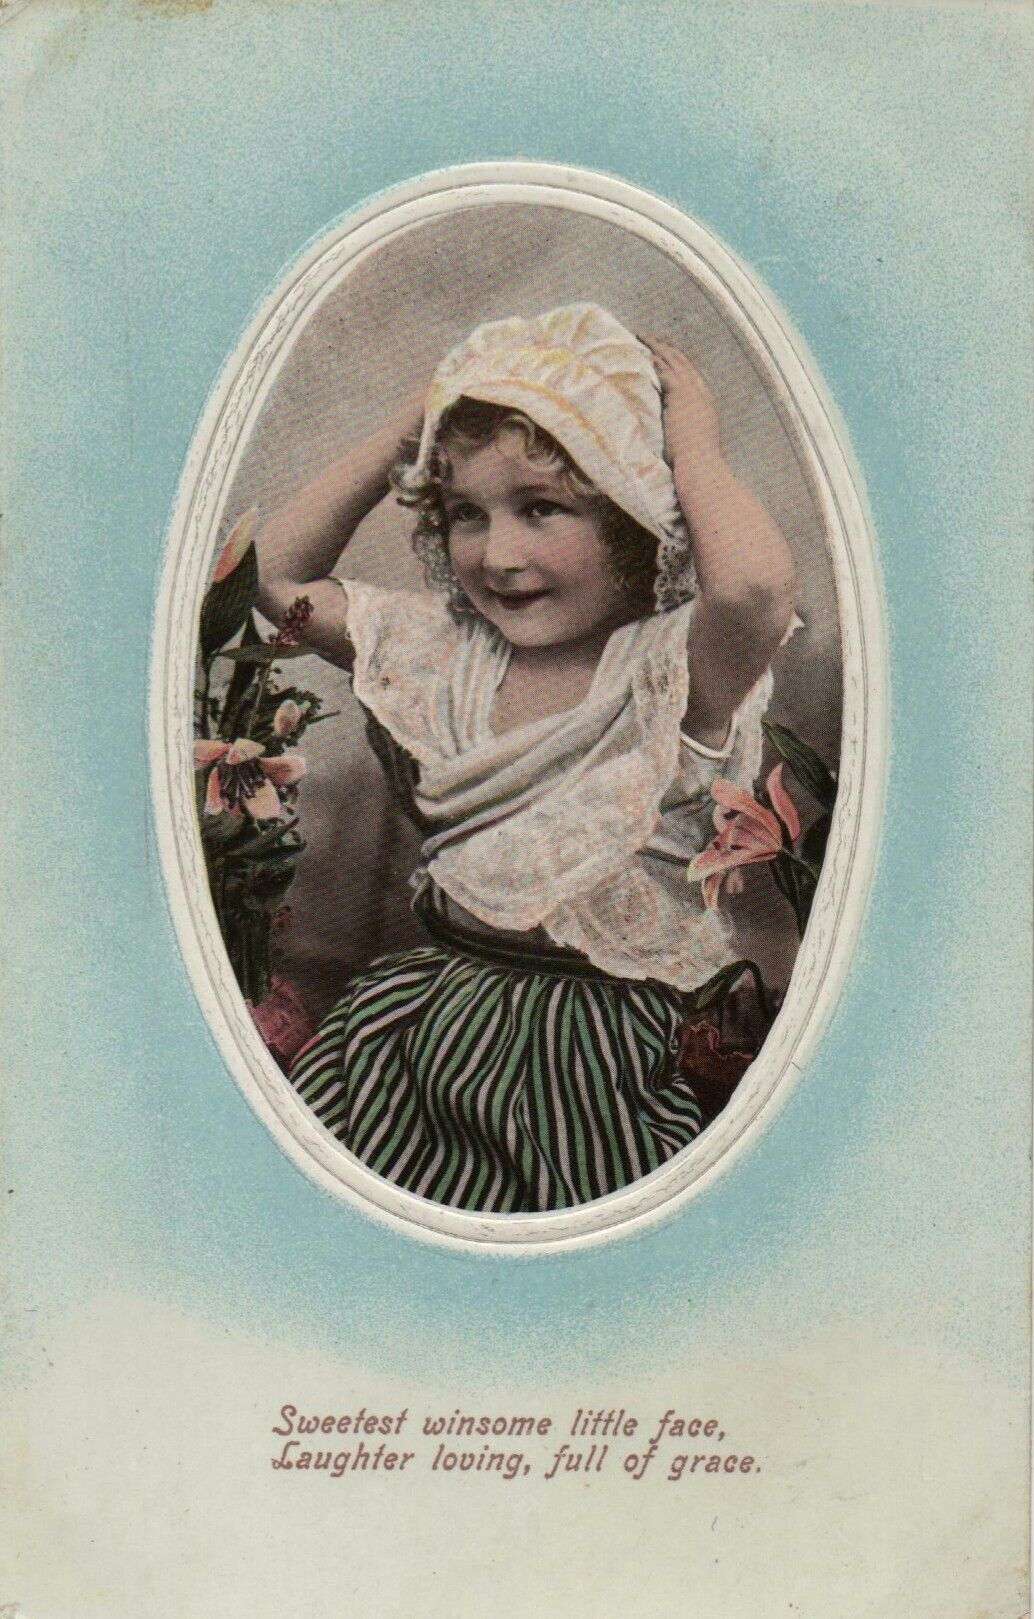 Sweetest winsome little face Laughter loving, full of grace 1906